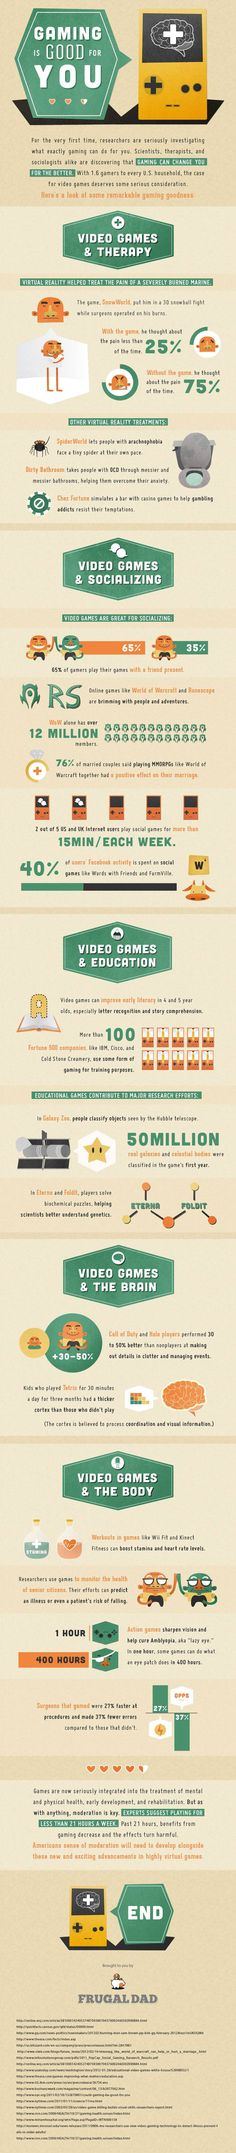 Why Gaming is Good For You - Infographic